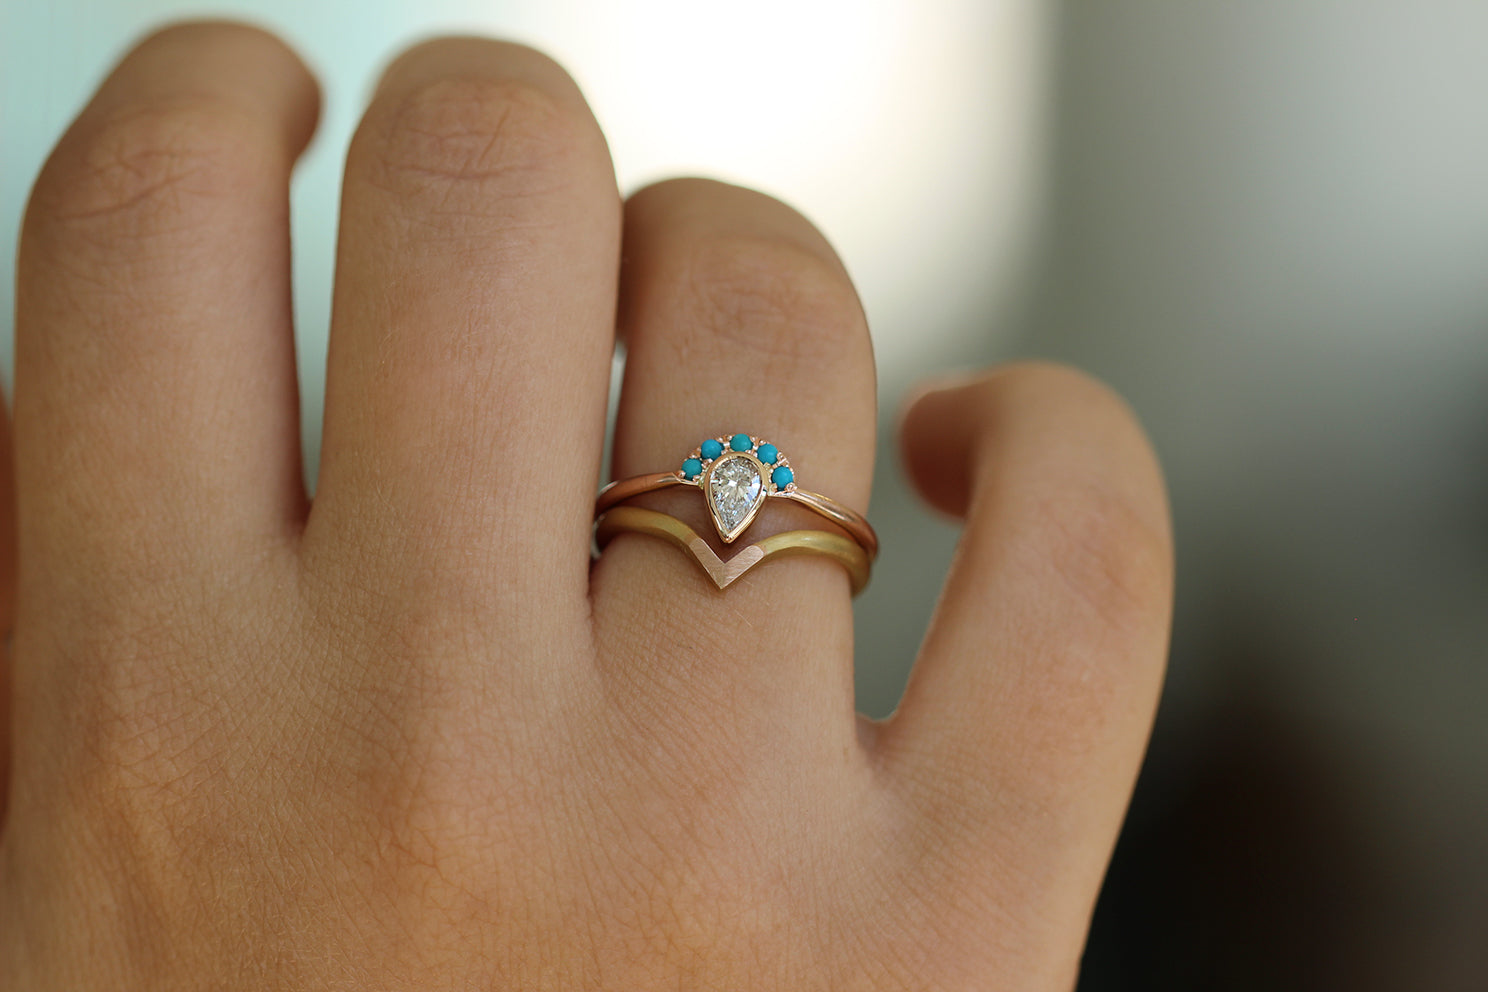 Pear Cut Diamond Ring - Turquoise Crown Diamond Ring in Set